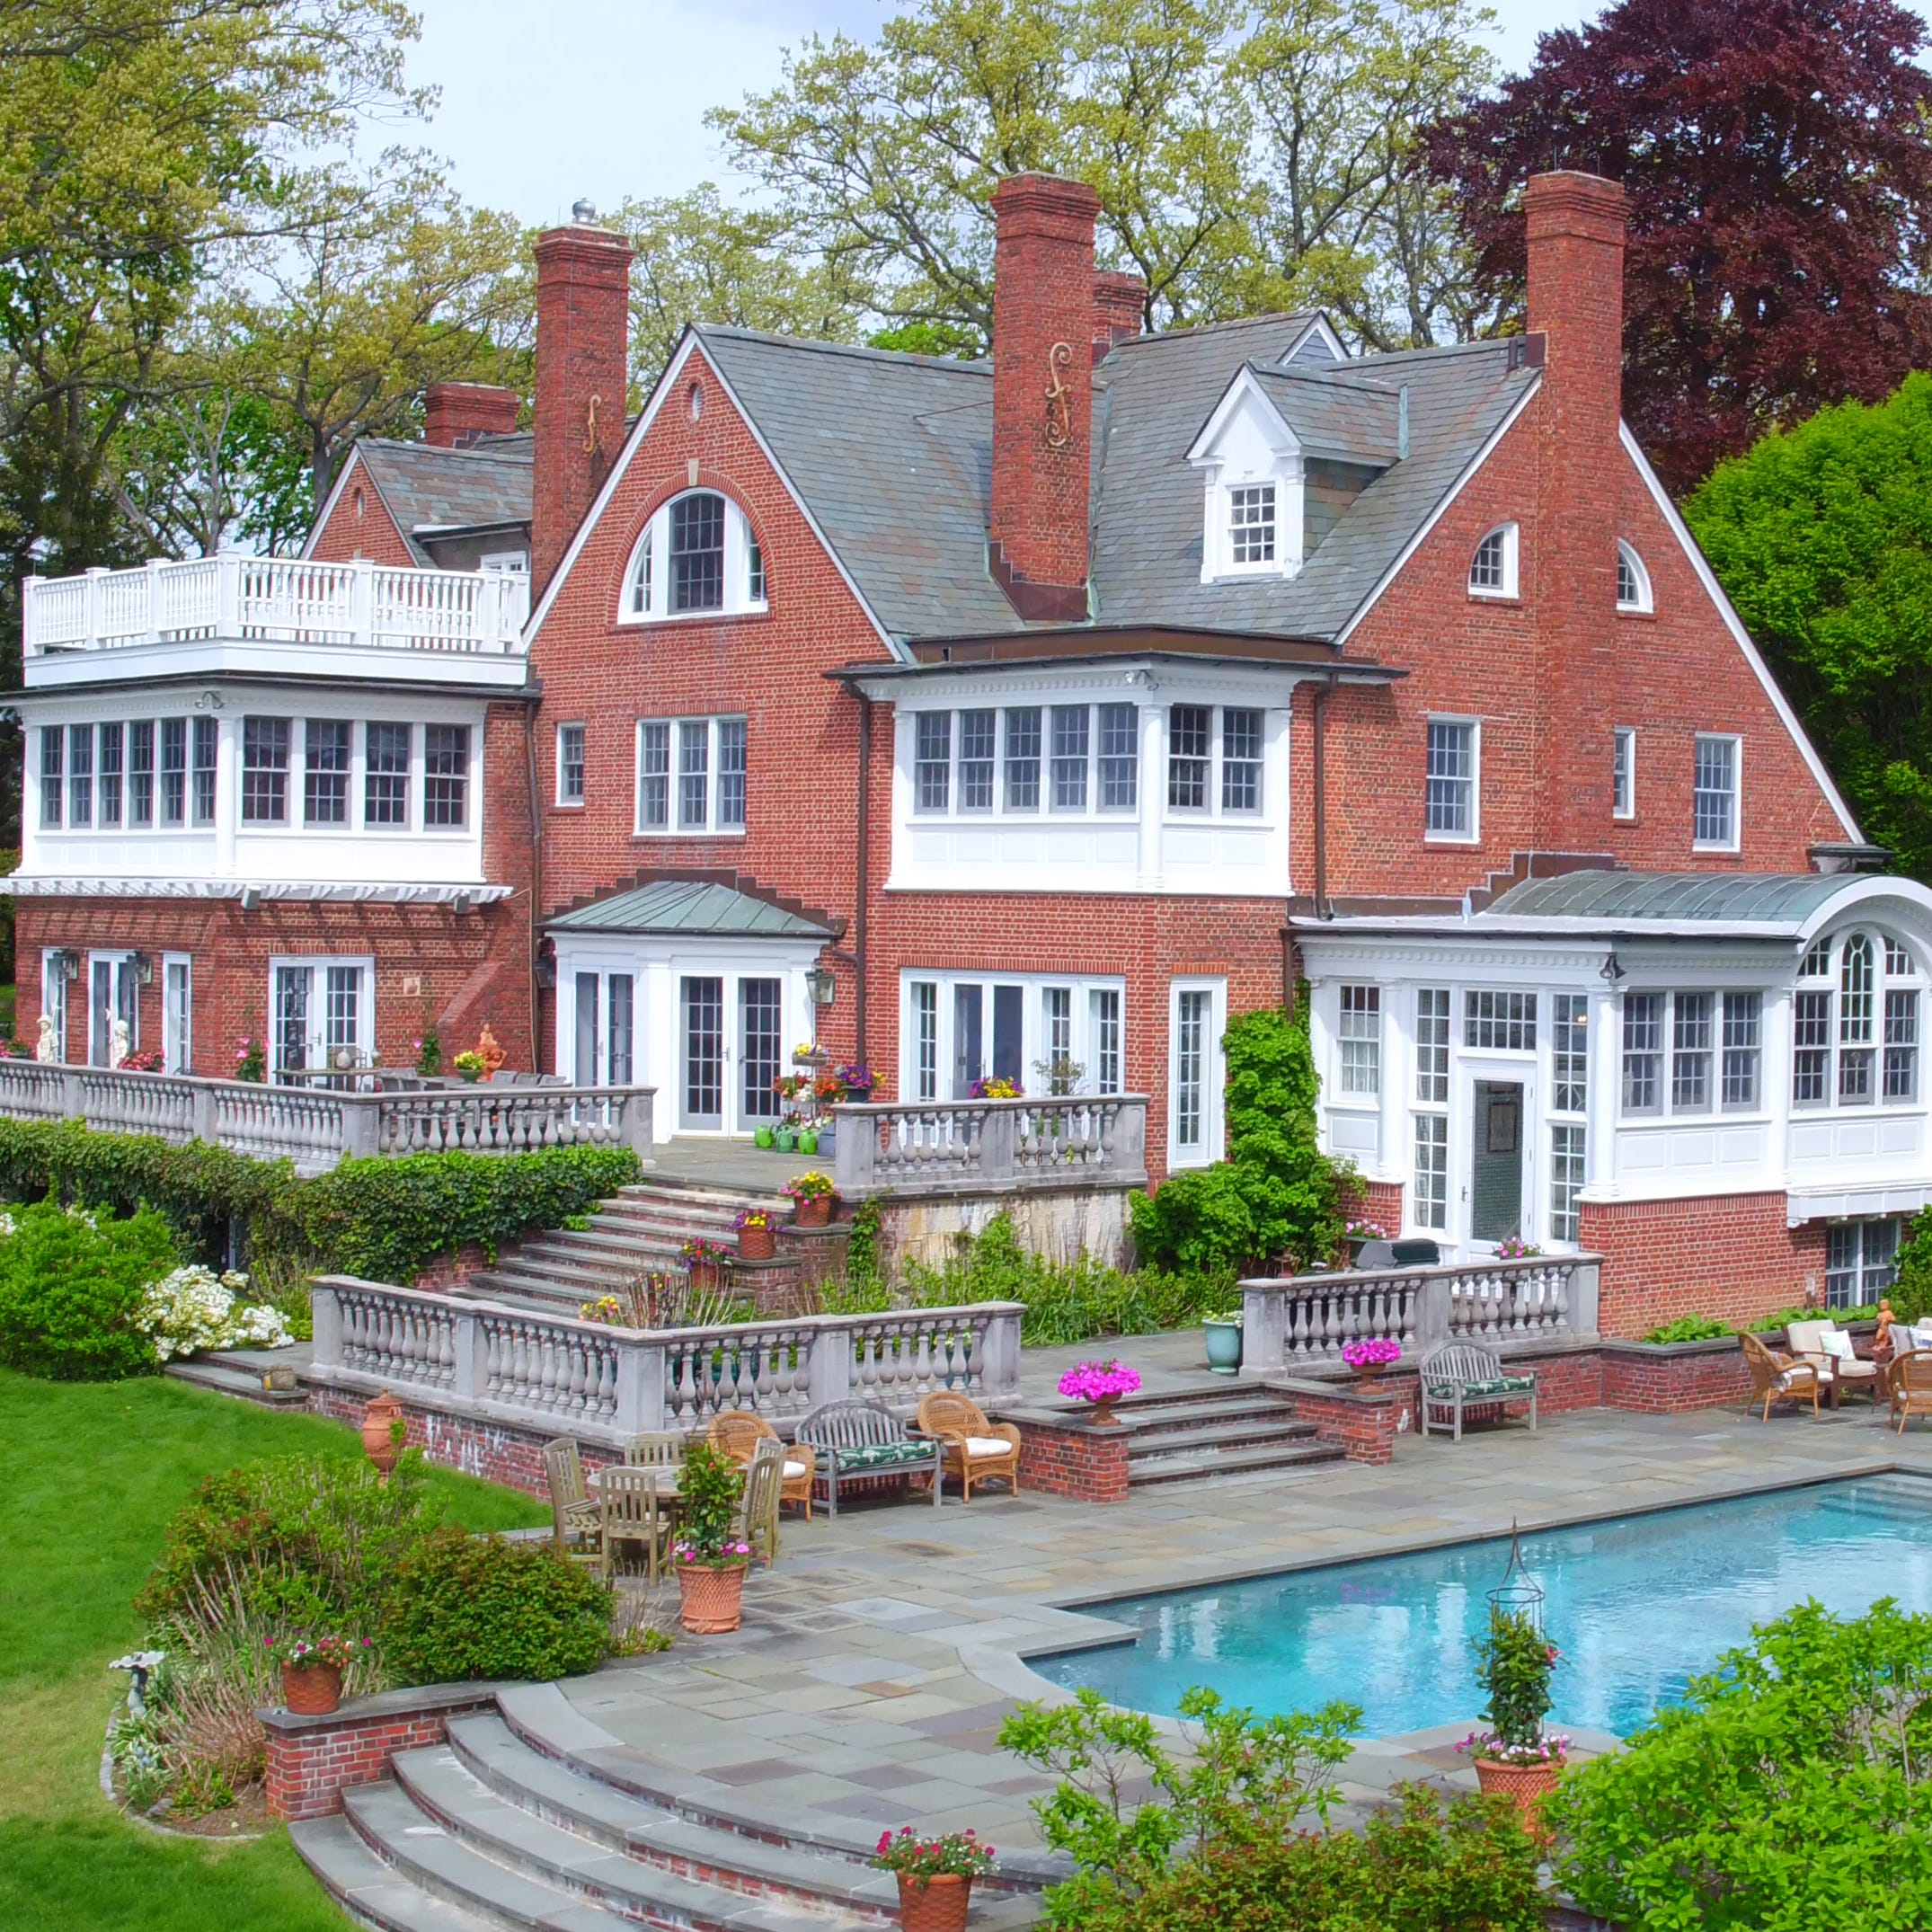 Low Wood, a 1900 estate on the Sound Shore waterfront, has been sold for $10.3M